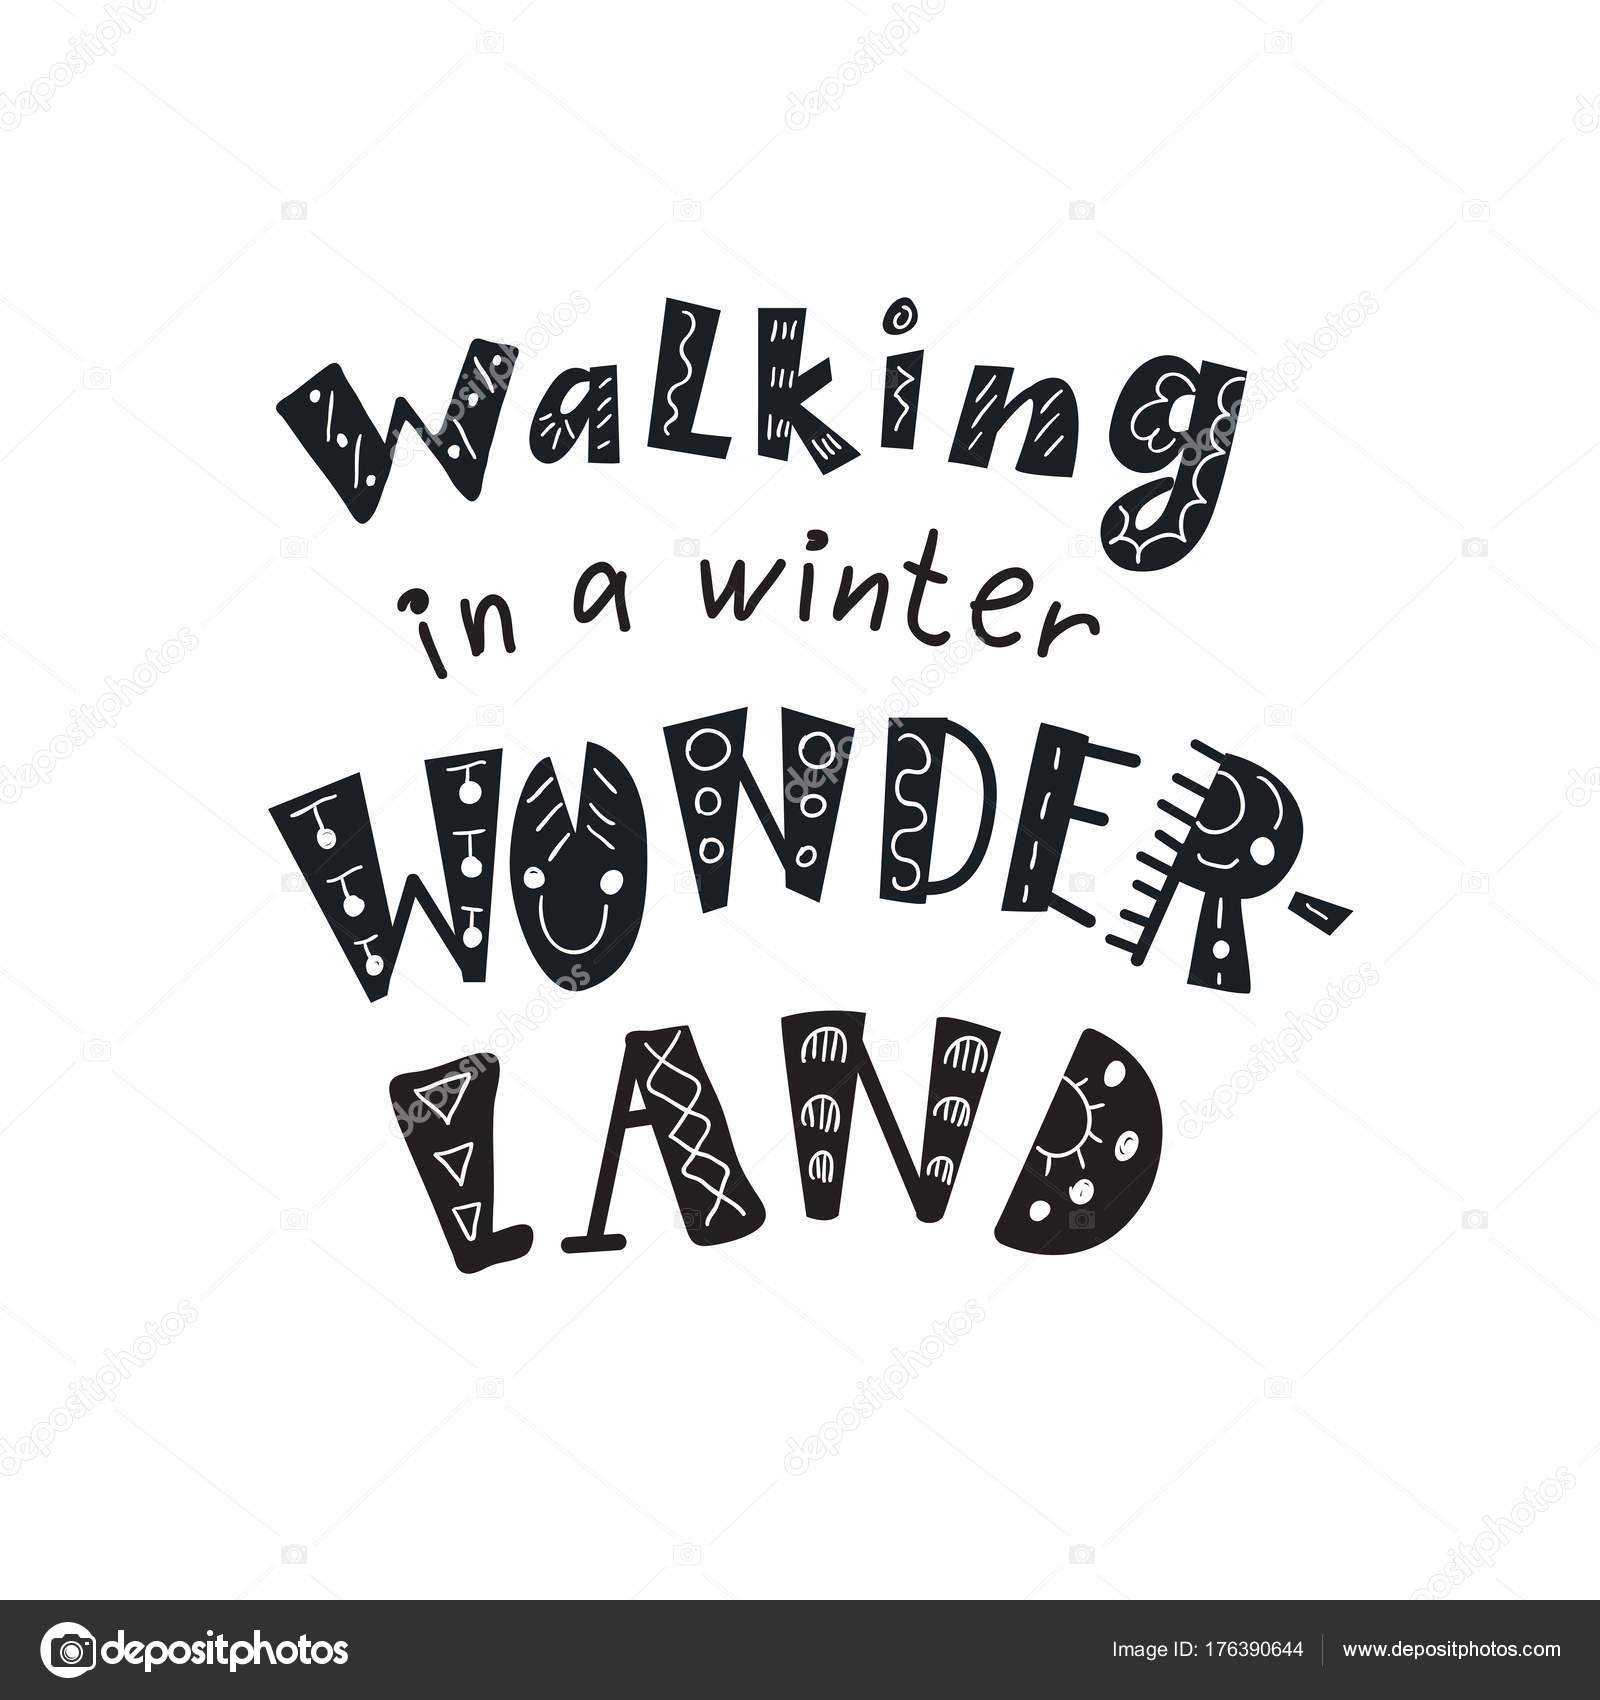 Winter Quotes And Phrases Hand Drawn Lettering With Decorative